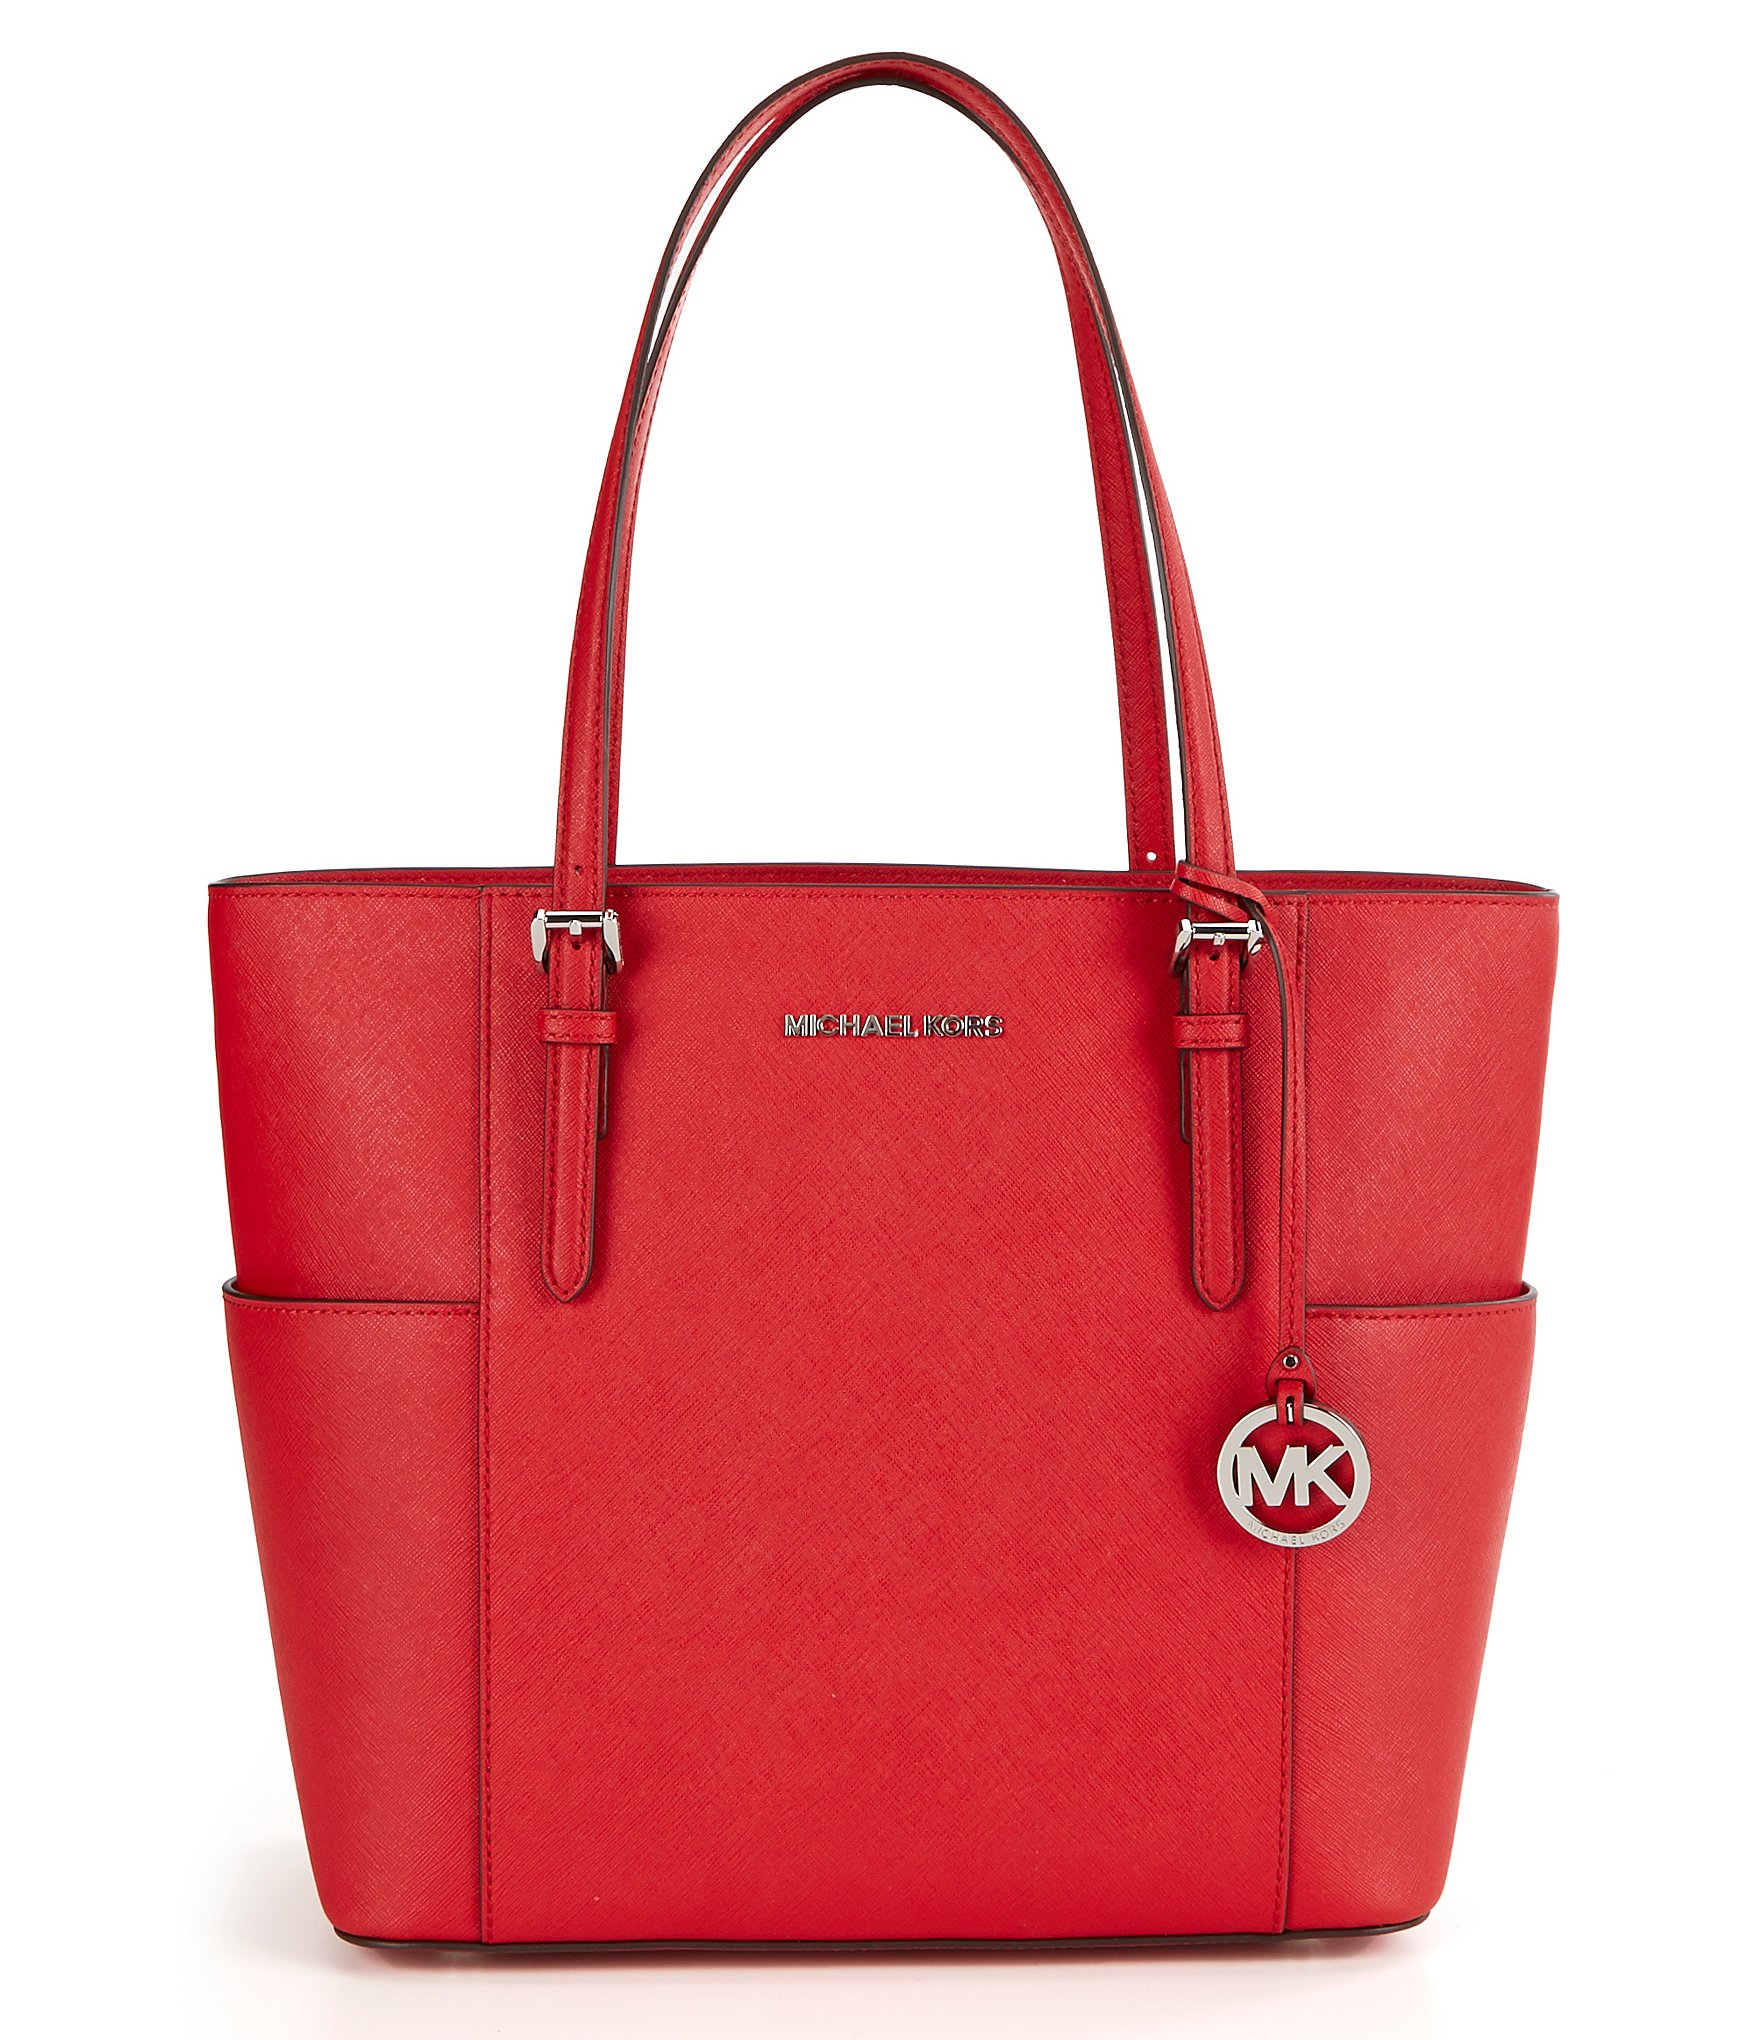 c7ccbf8b41 Buy michael kors matching bag and purse   OFF65% Discounted